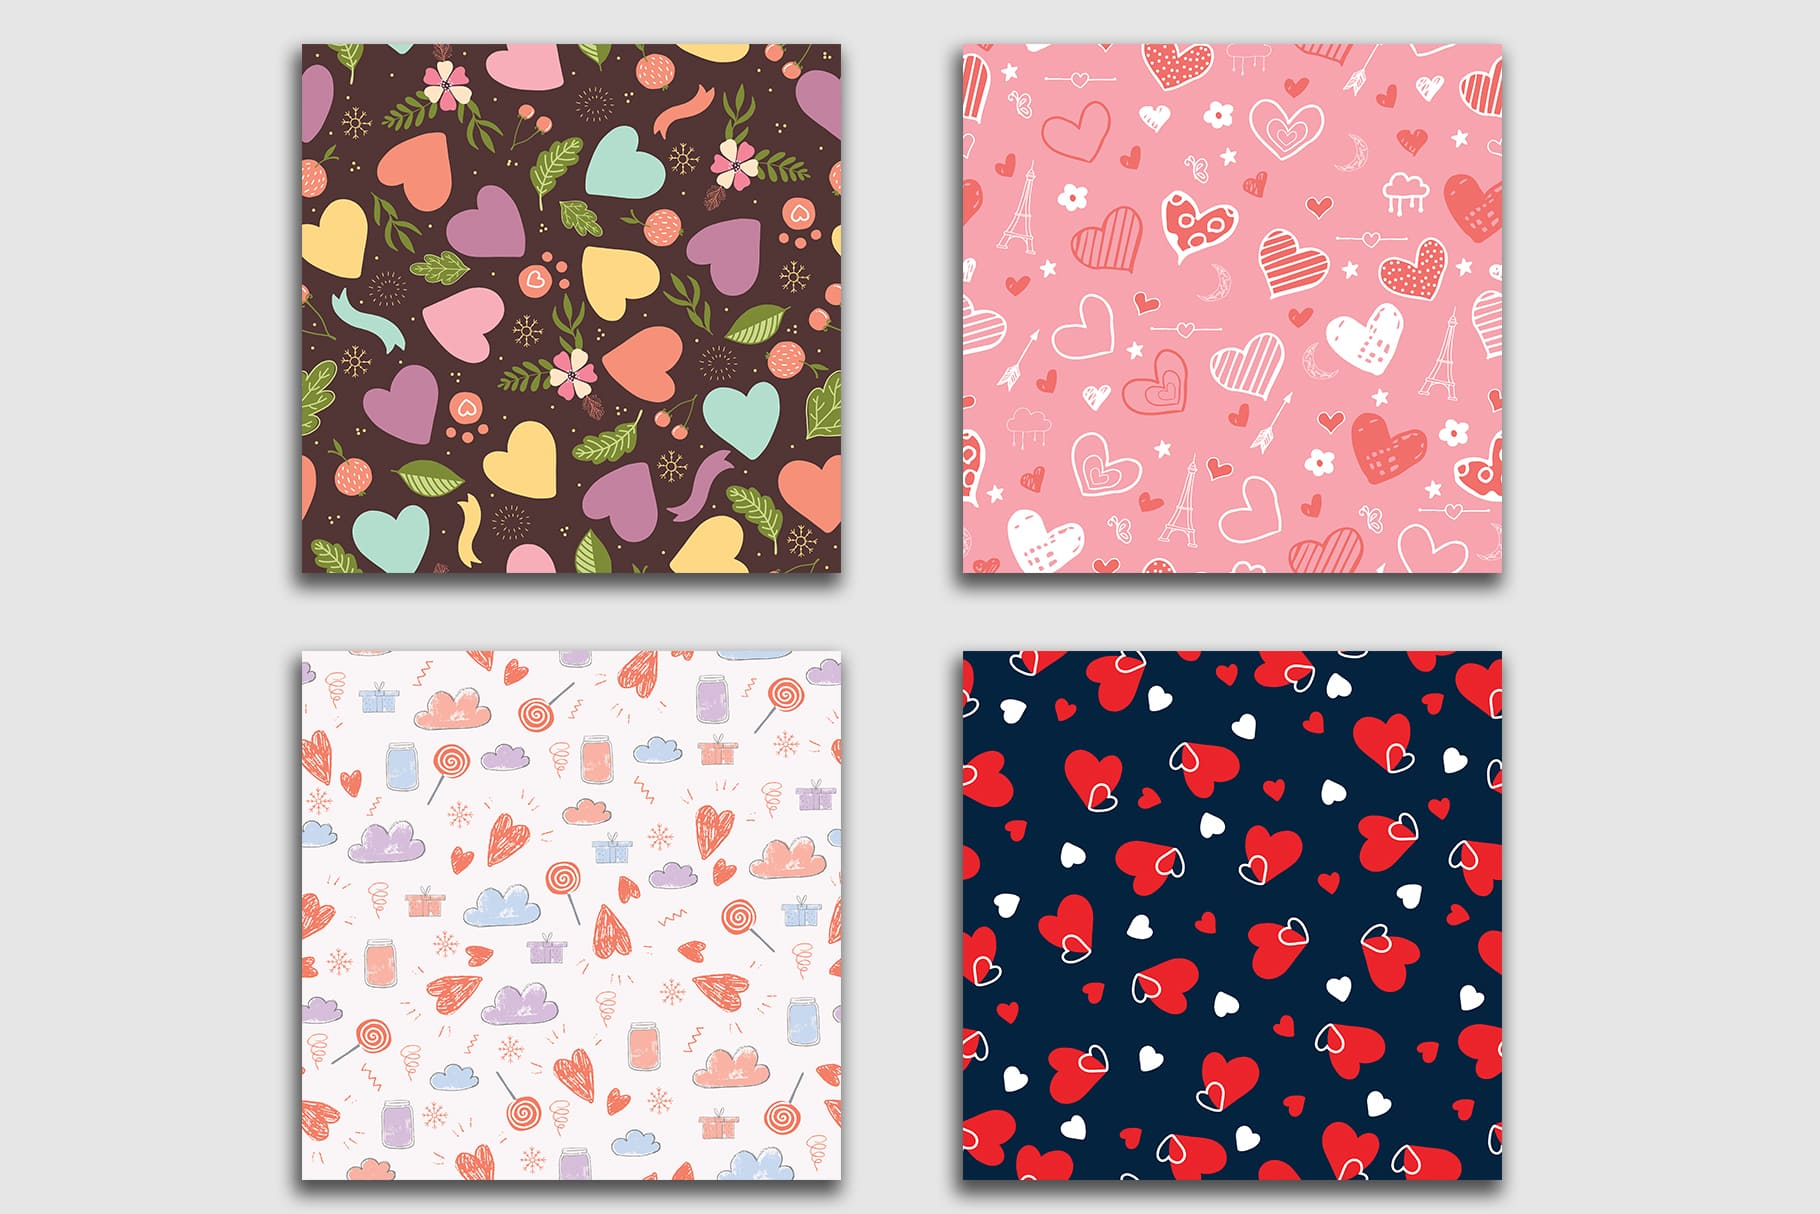 Beautiful tiles with hearts.